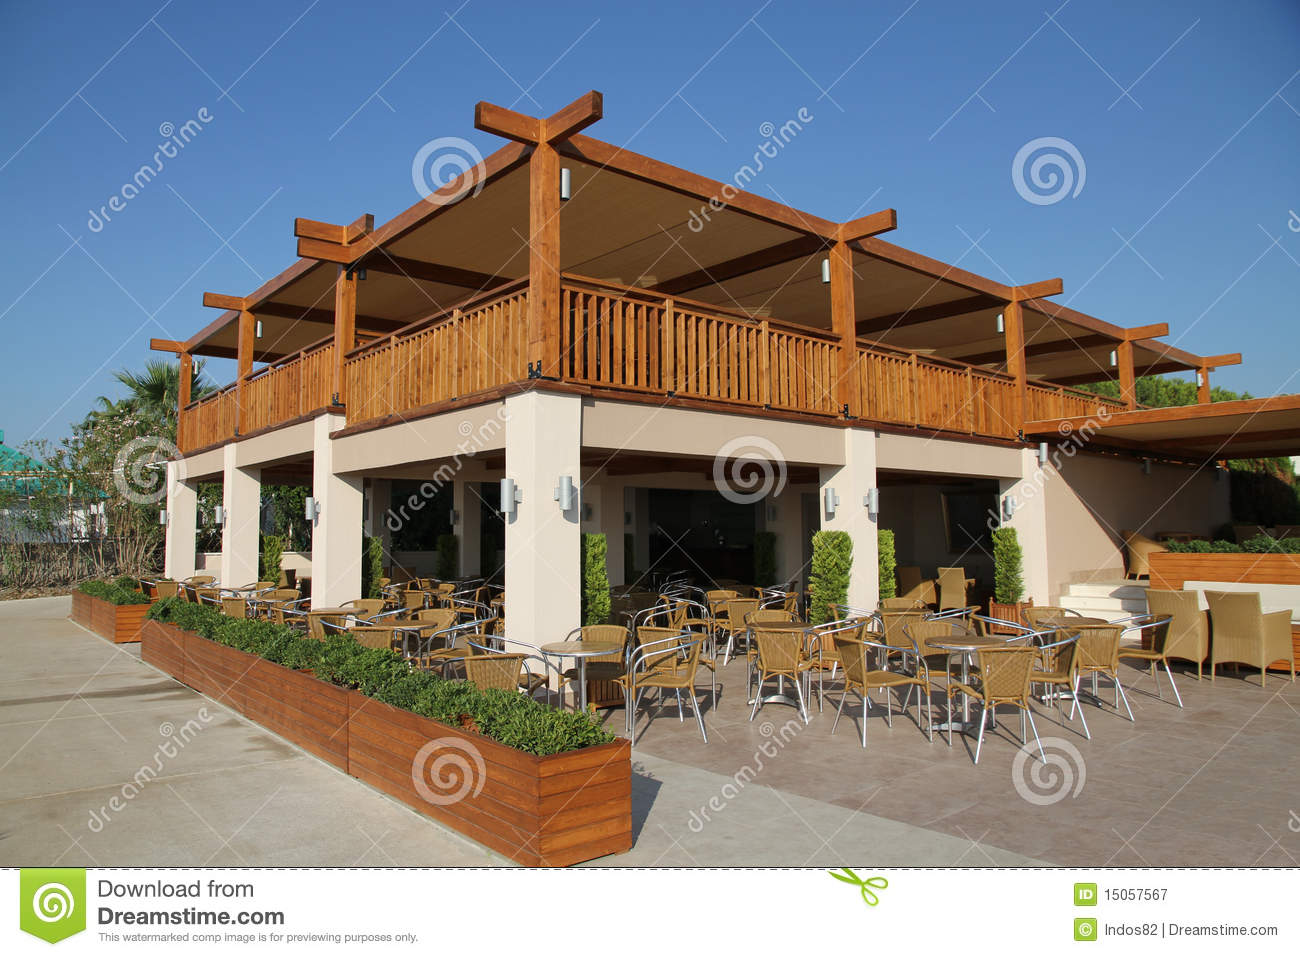 Furniture Design App Outdoor Restaurant Royalty Free Stock Photography Image